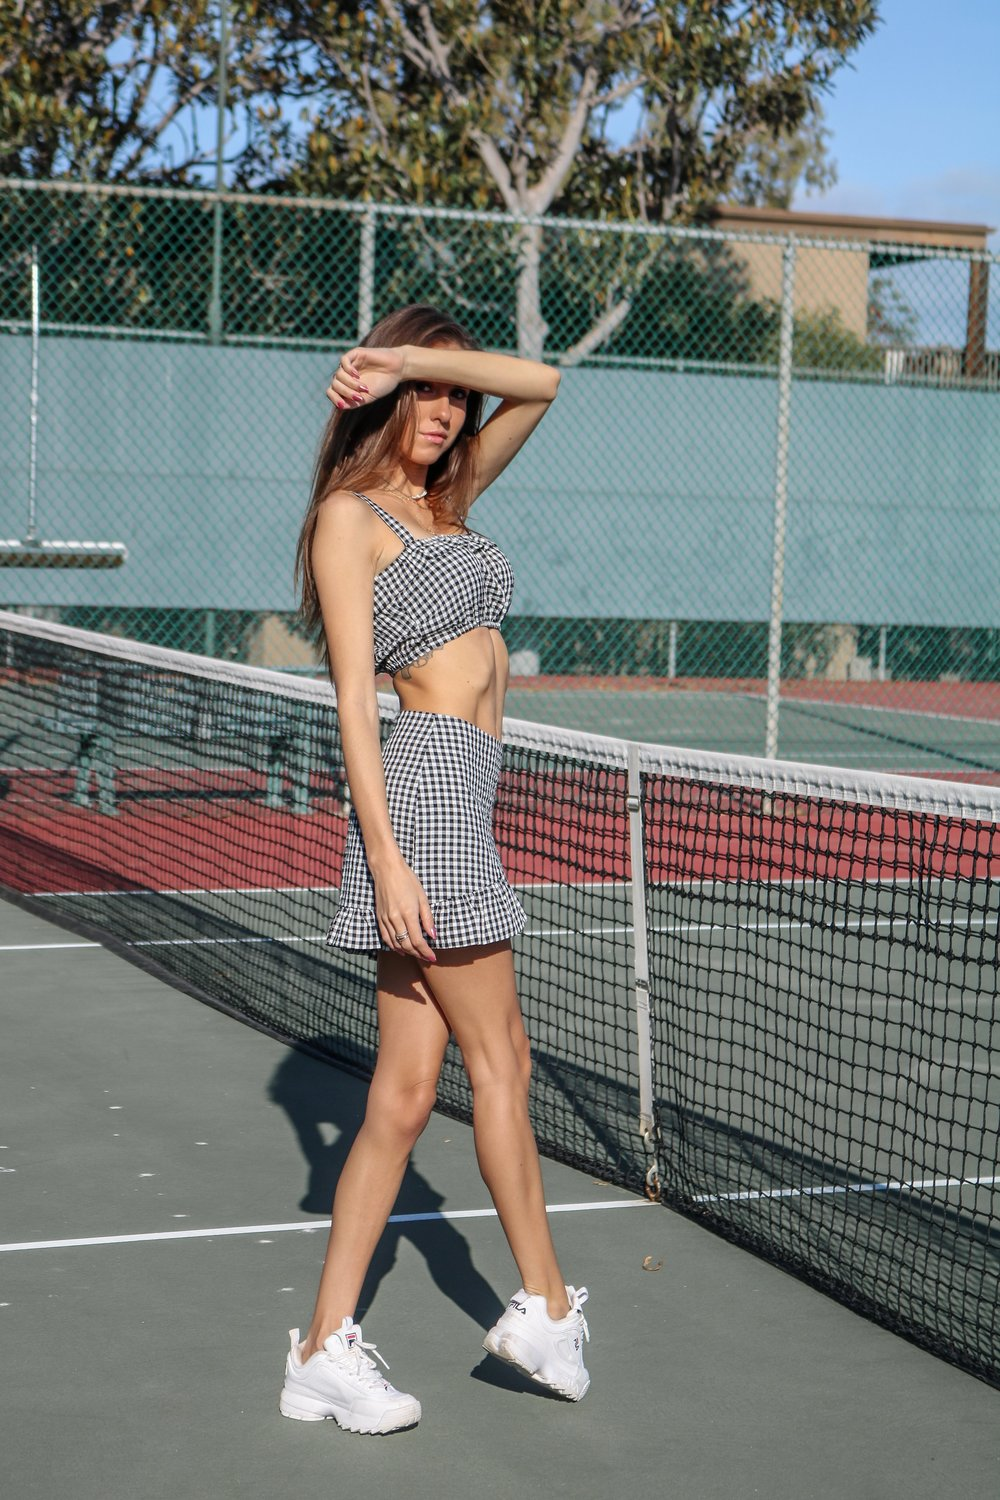 The+Hungarian+Brunette+gingham+set+%2812+of+13%29.jpg